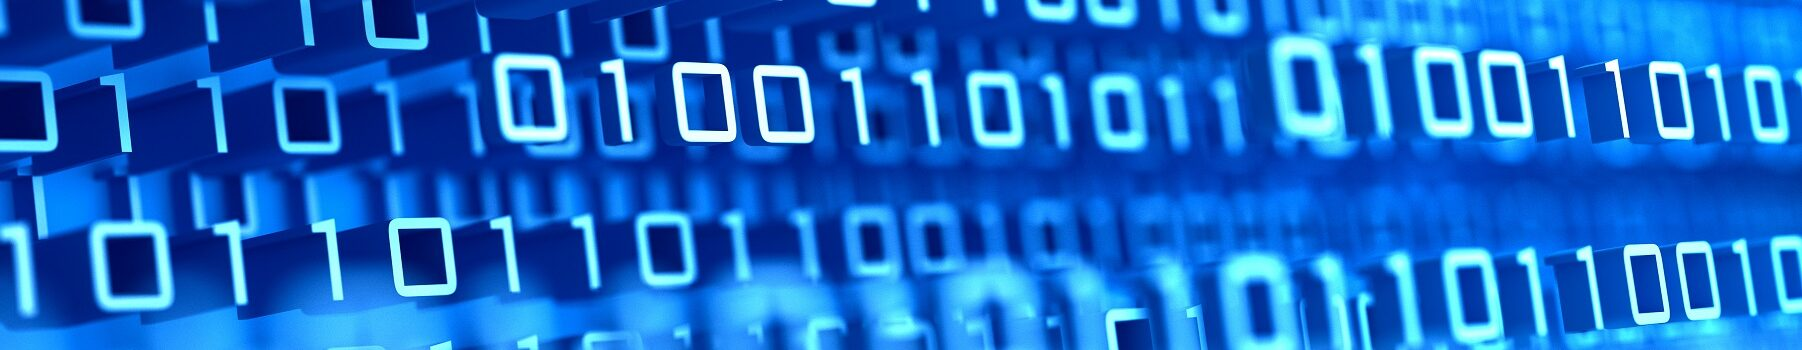 big data; blue background with flowing binary digits, shallow depth of field